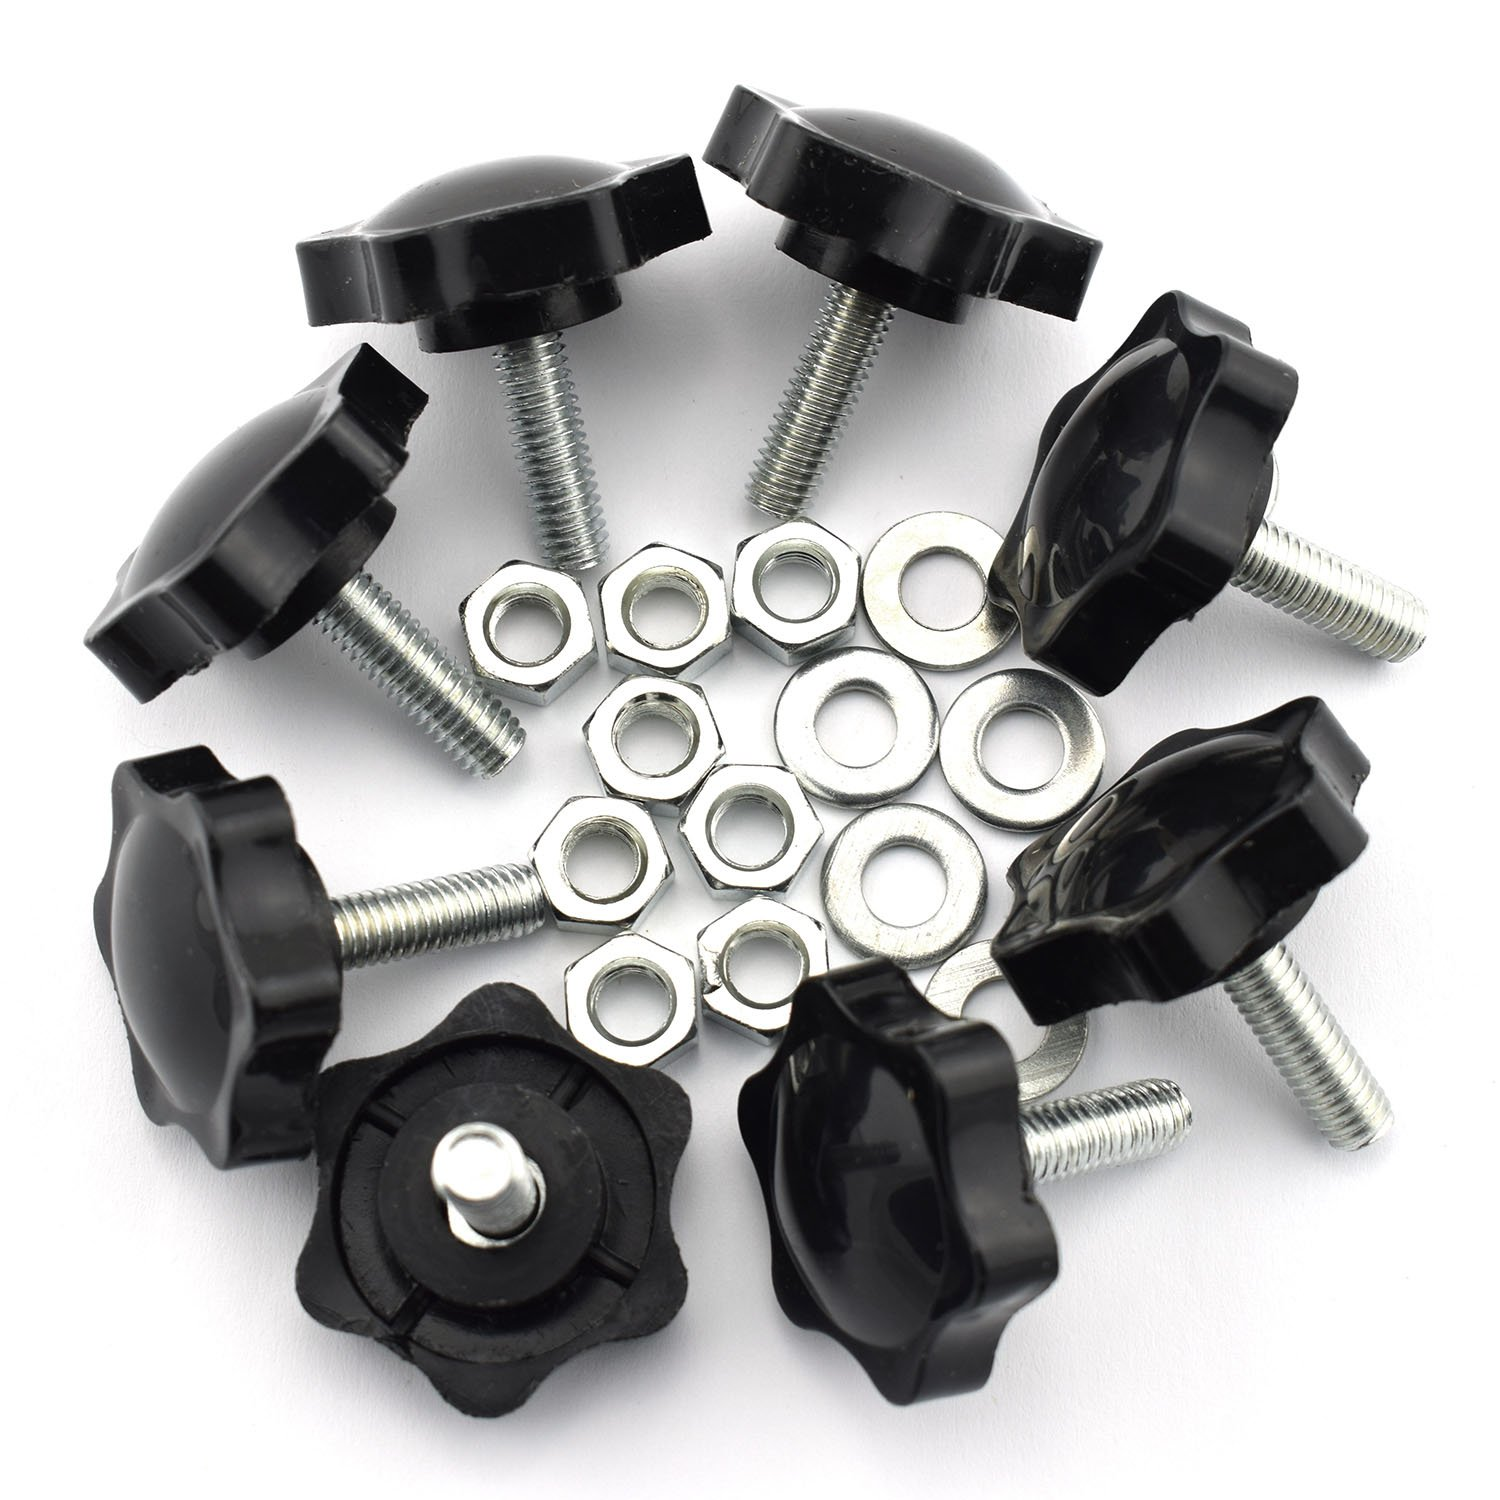 8 Set M620 Thumb Screw Plastic Plum Blossom Shape Head Threaded Knurled Grip Knobs Clamping Screw with Nut Washer Pro Bamboo Kitchen